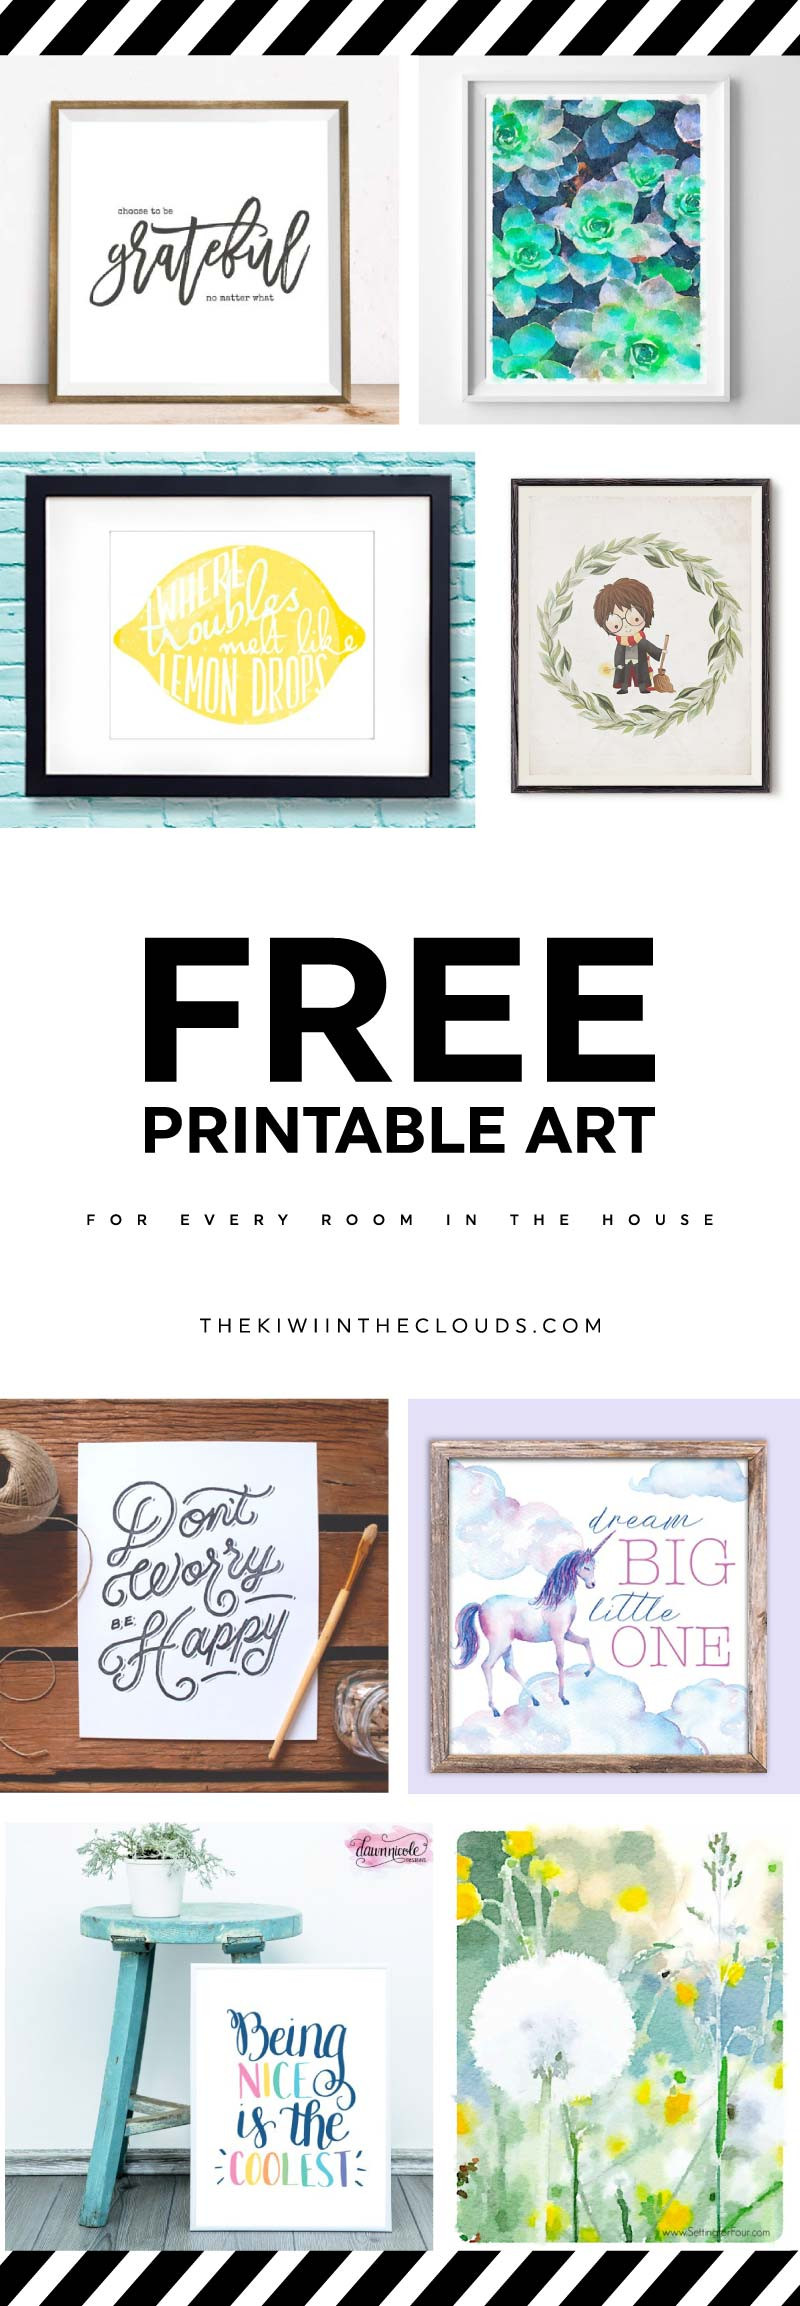 Best ideas about Printable Wall Art . Save or Pin 21 Free Printable Art Prints To Quickly Decorate The Now.